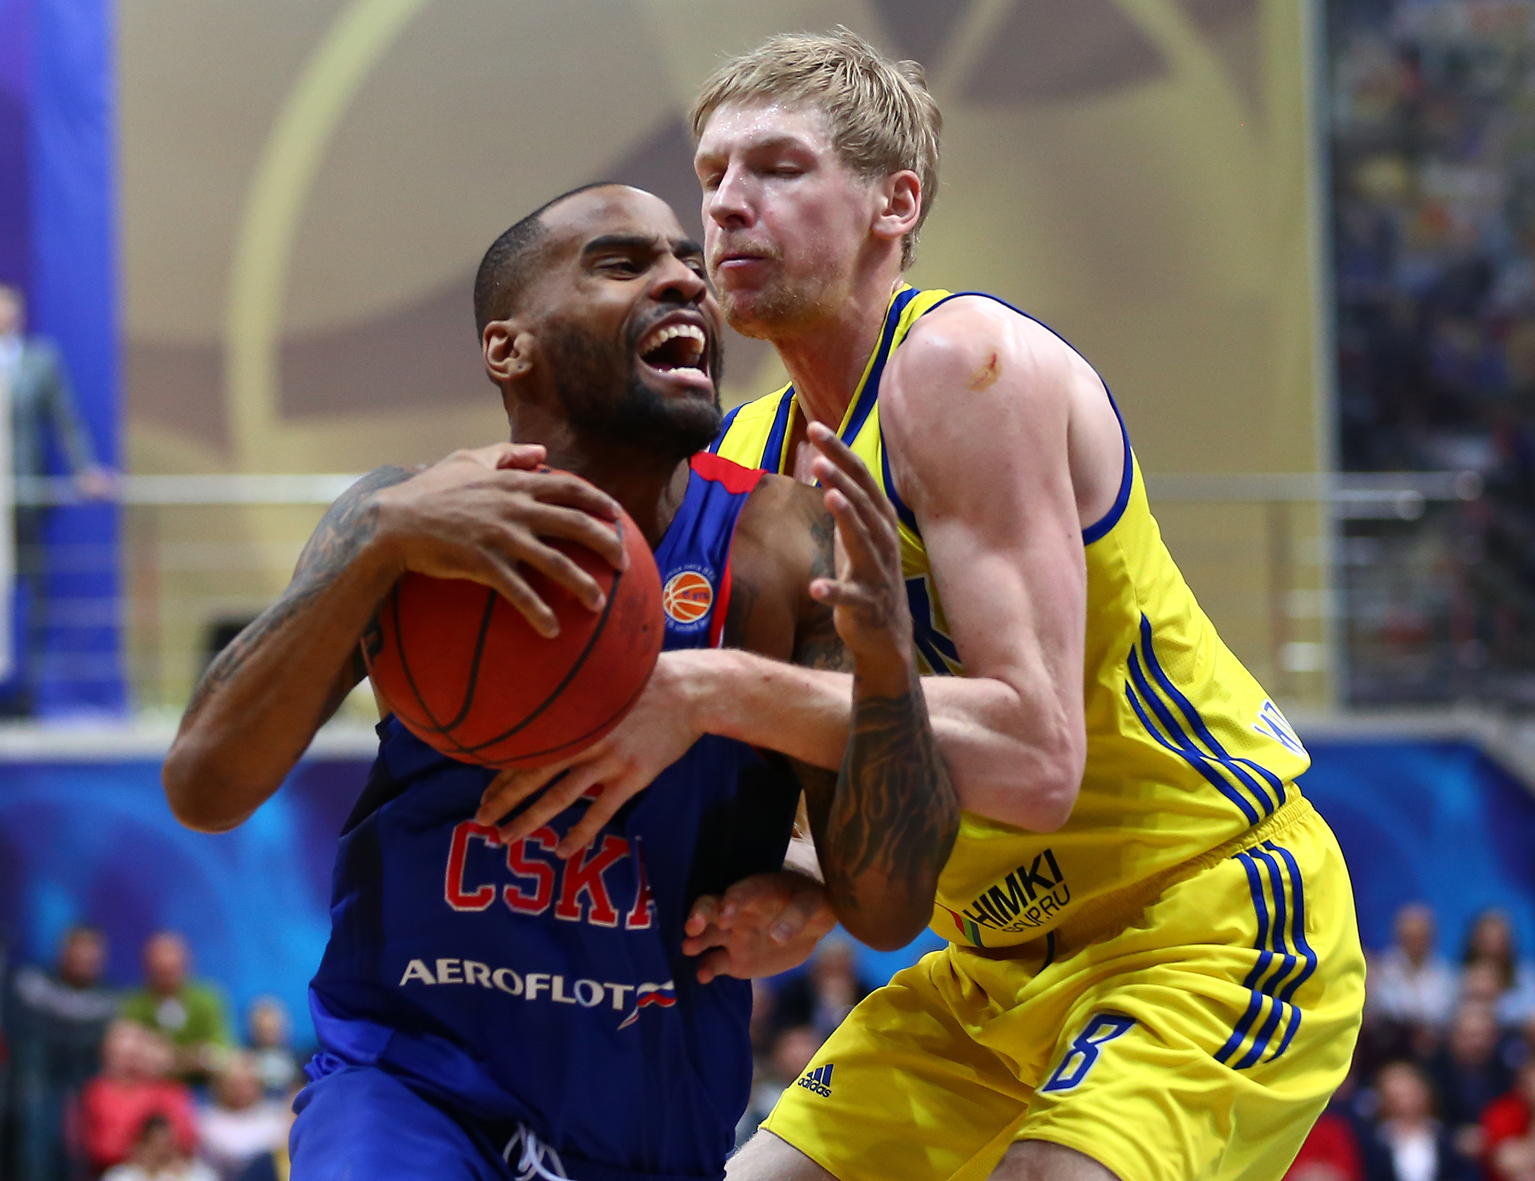 CSKA Flexes Muscles vs. Khimki